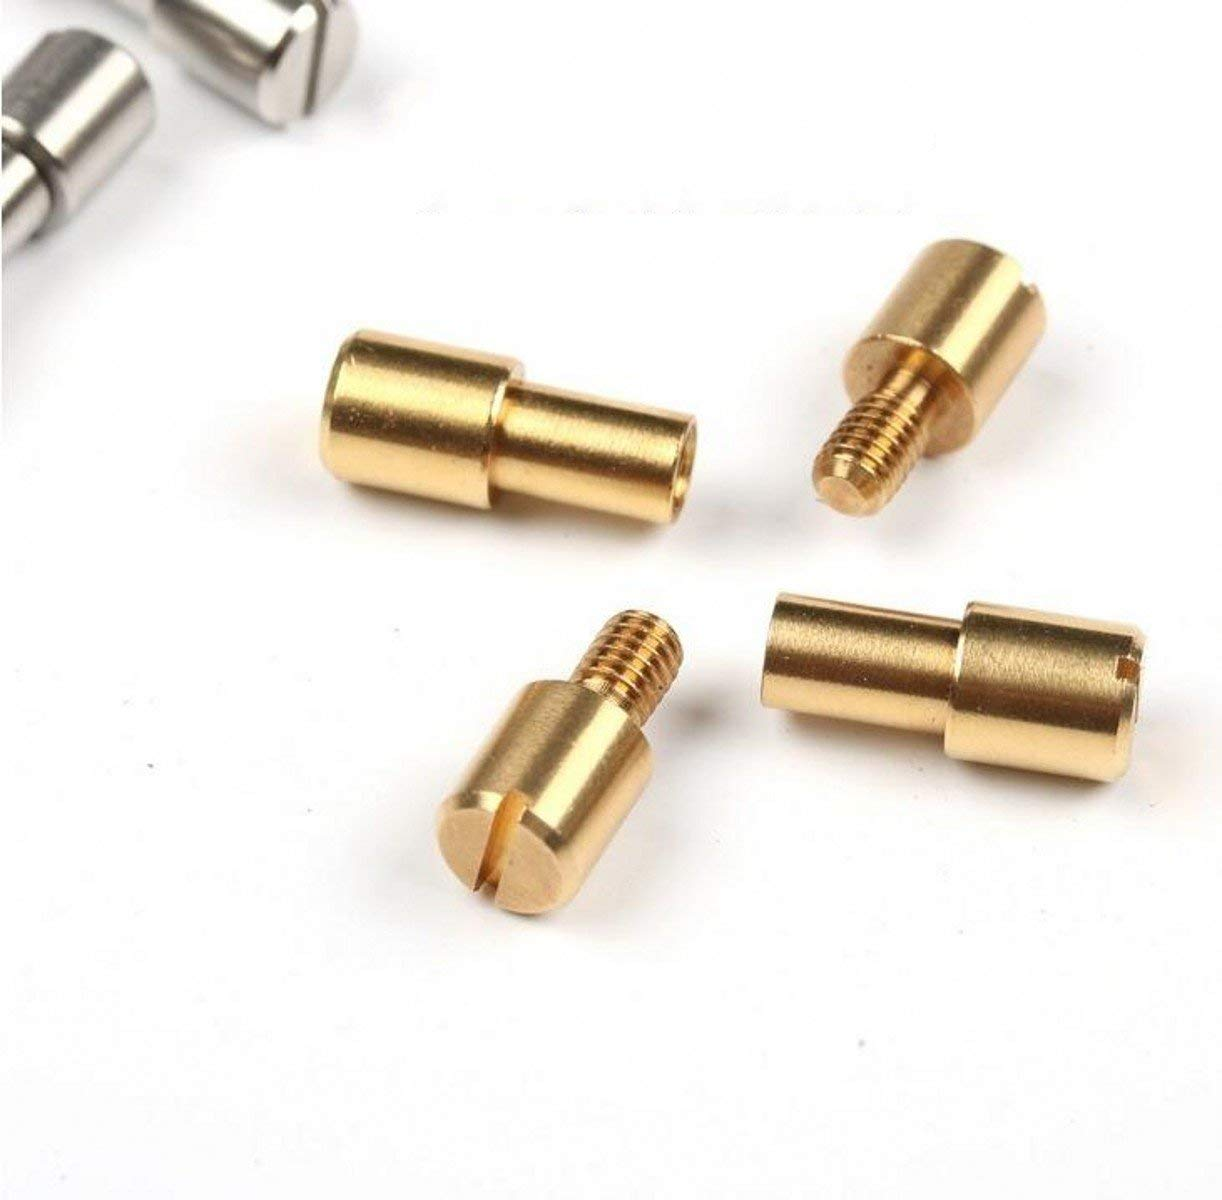 WellieSTR 10 Pieces (M/Solid Brass/4mm) Corby Bolts Fastener, Tactics lock Rivet Knife DIY tools handle fastener Revits,Stud